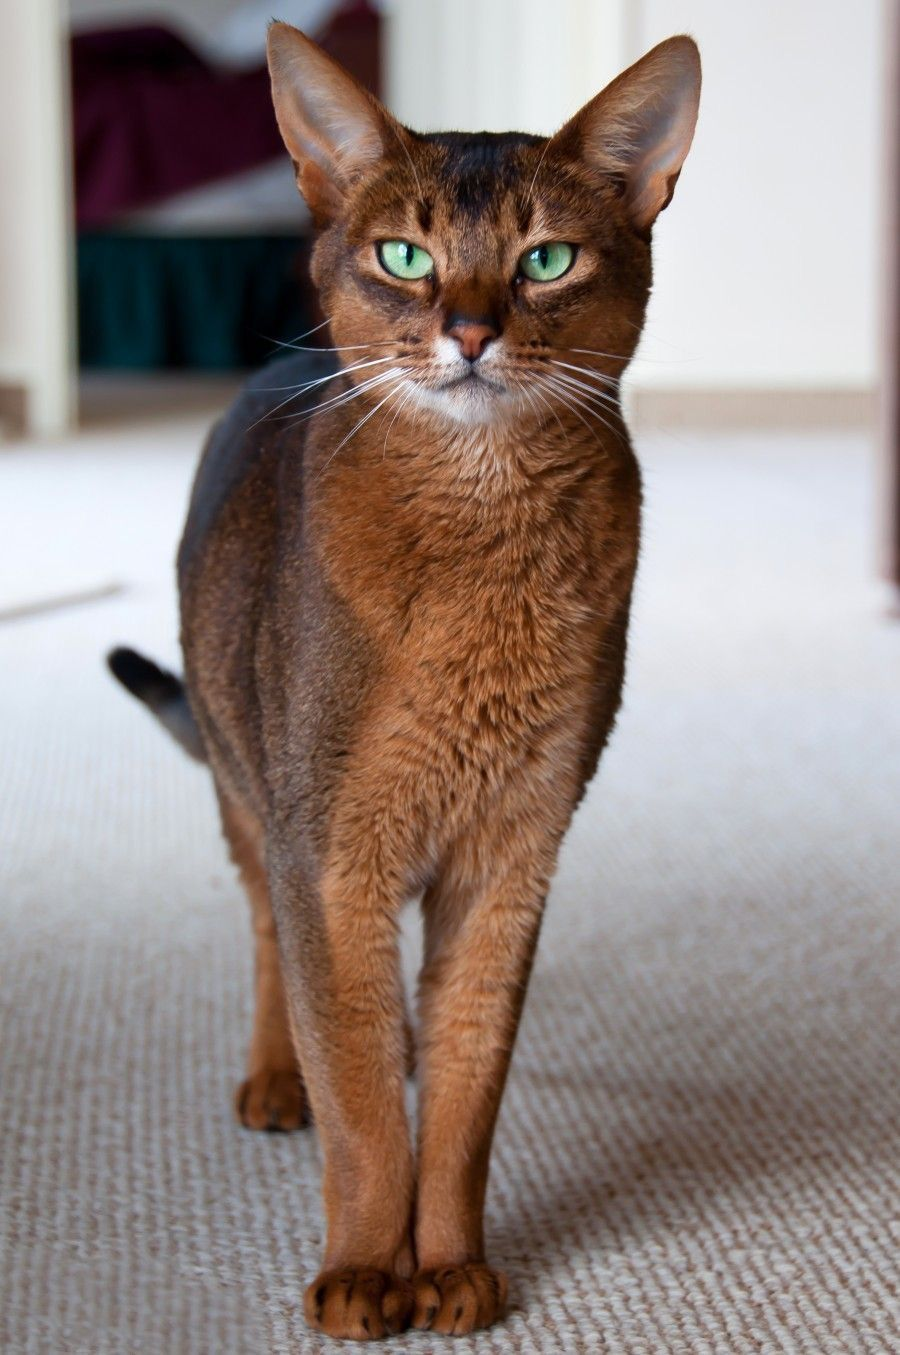 Pin by R2 on ️ Cats Abyssinian, Burmese, Havana Brown